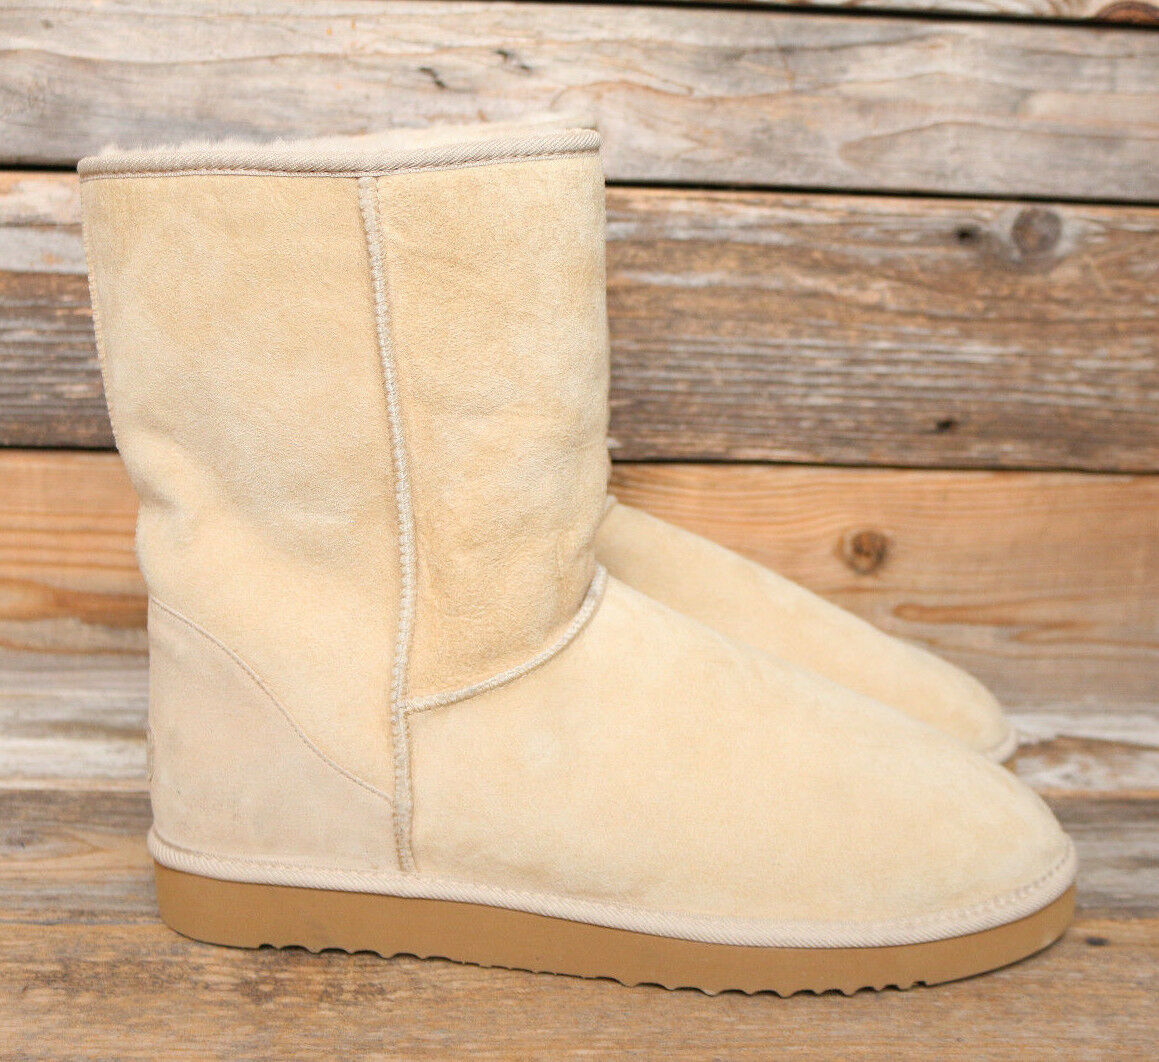 UGG Australia Herren Classic Short Sand Sheepskin Original Surf Boots US 17 UK 16